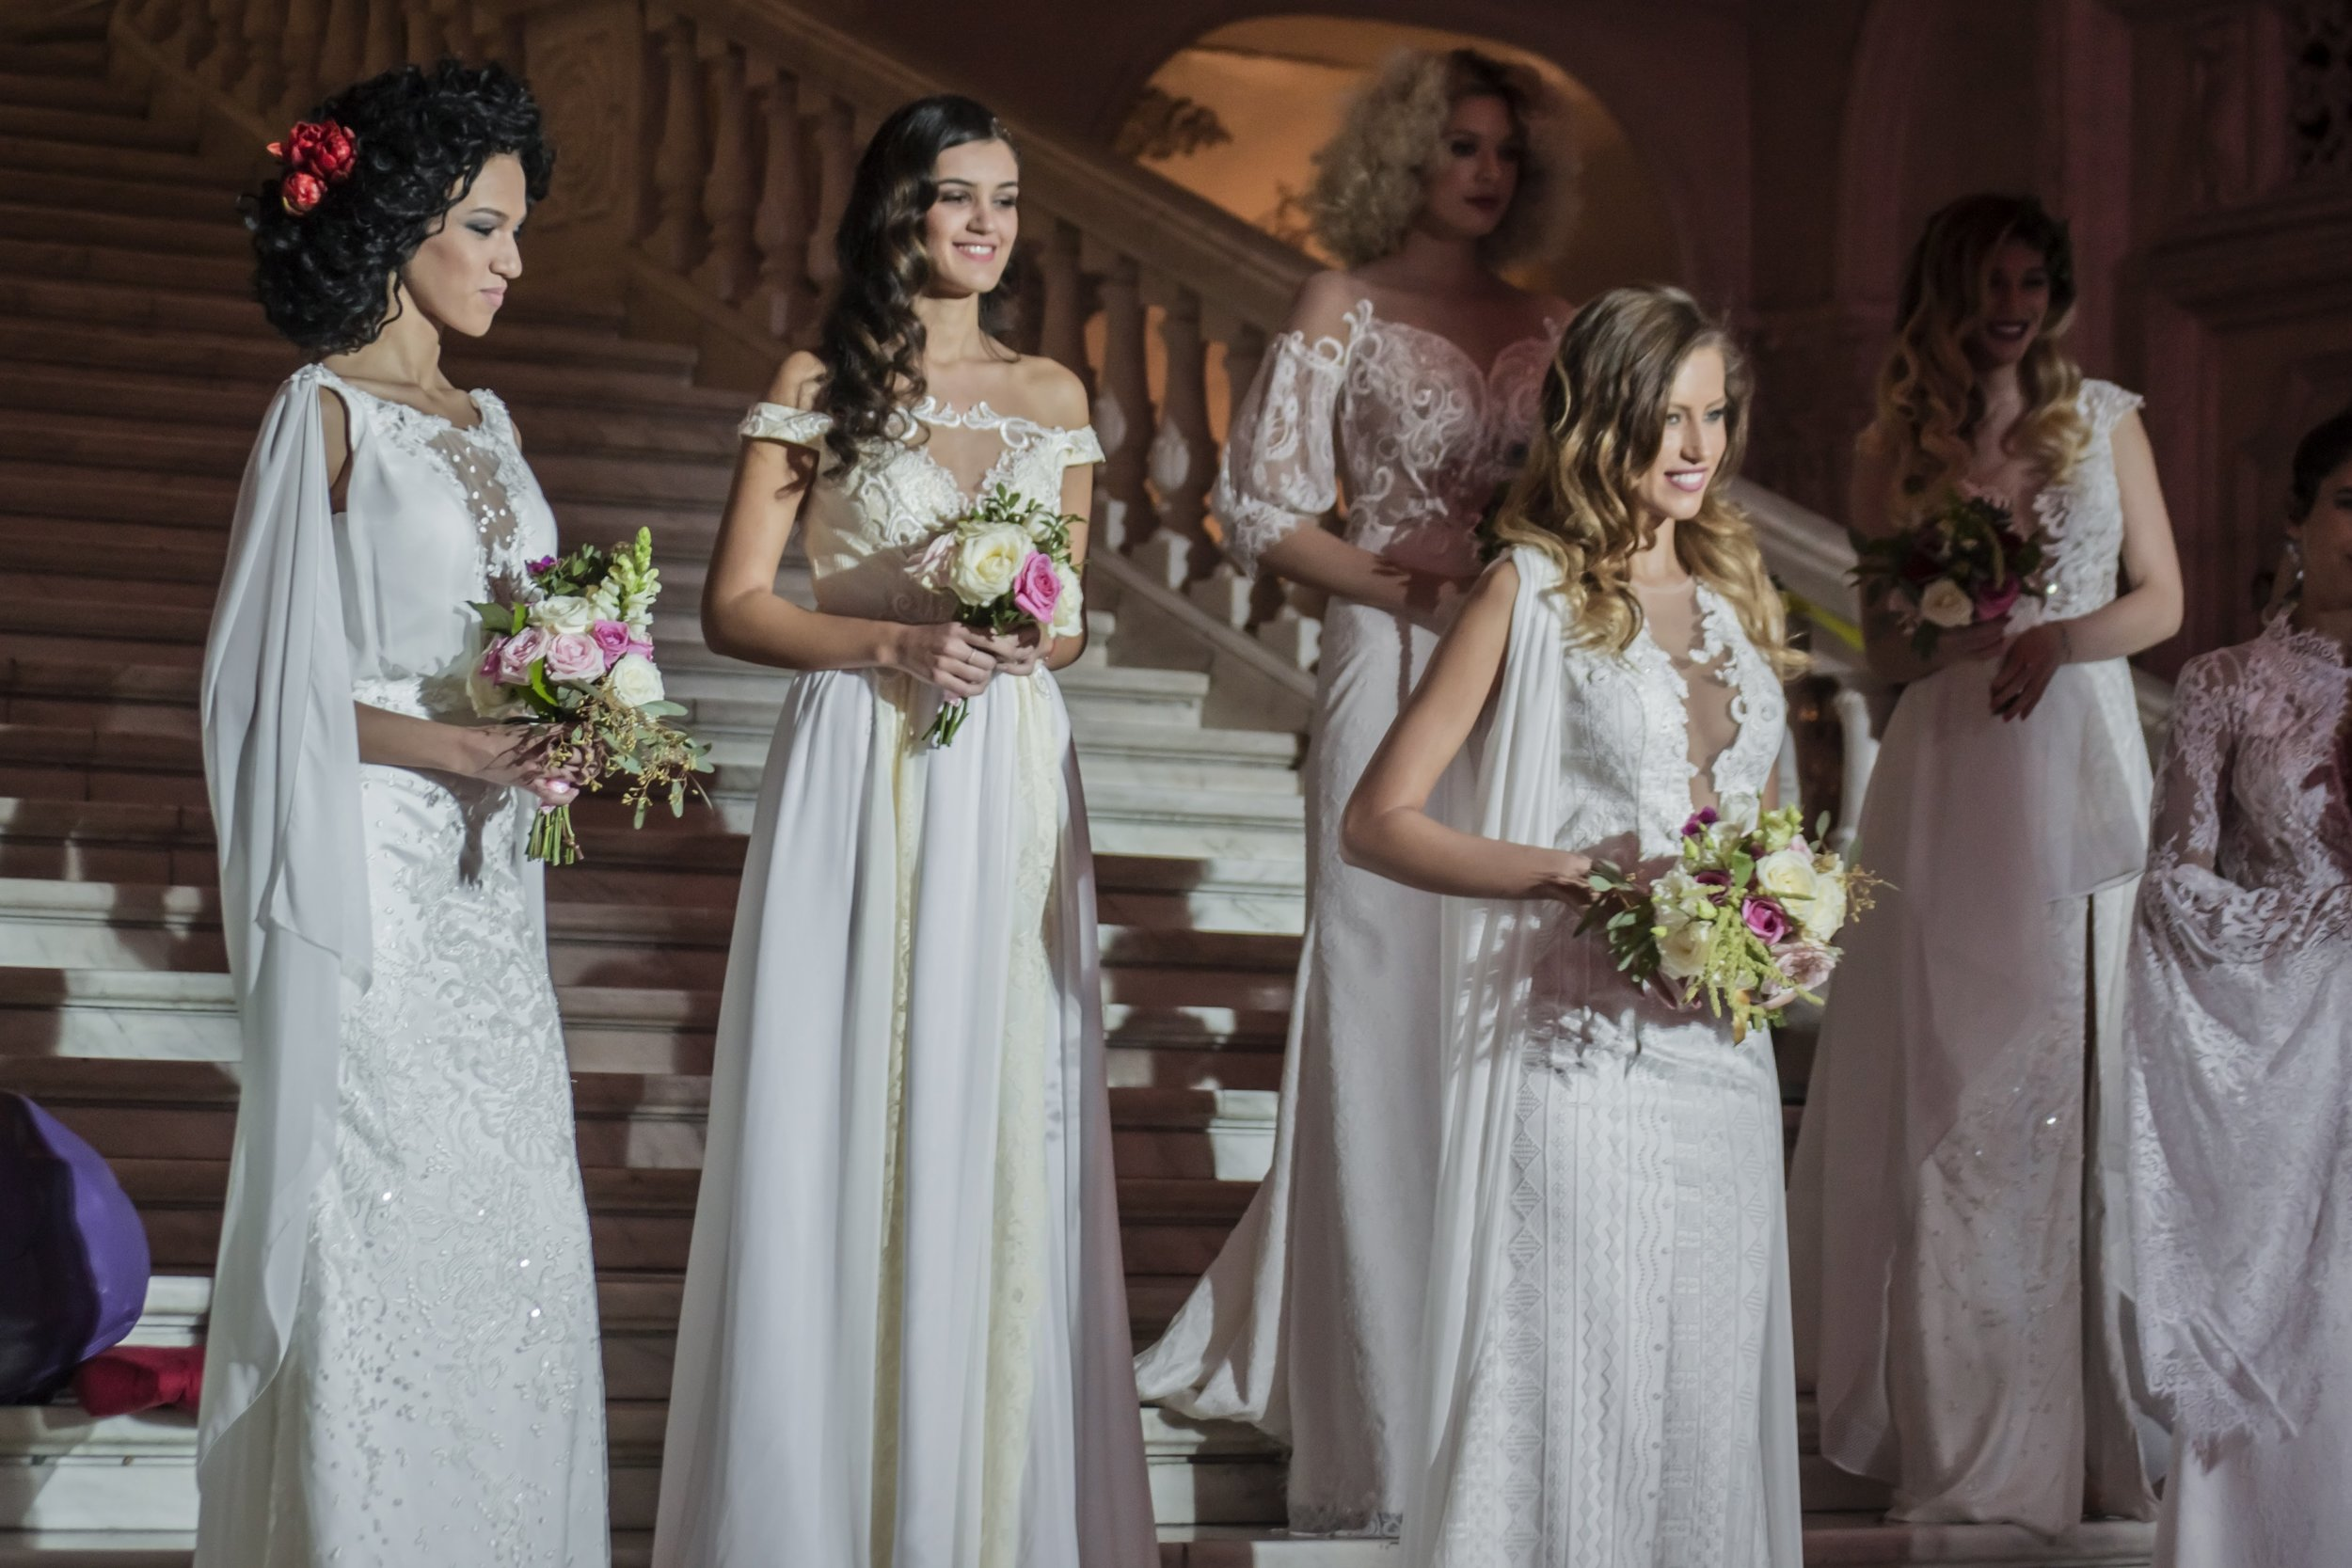 2018 wedding dresses featured  (left to right):   Aster ,  Coquelicot ,  Lilas ,  Cozla .